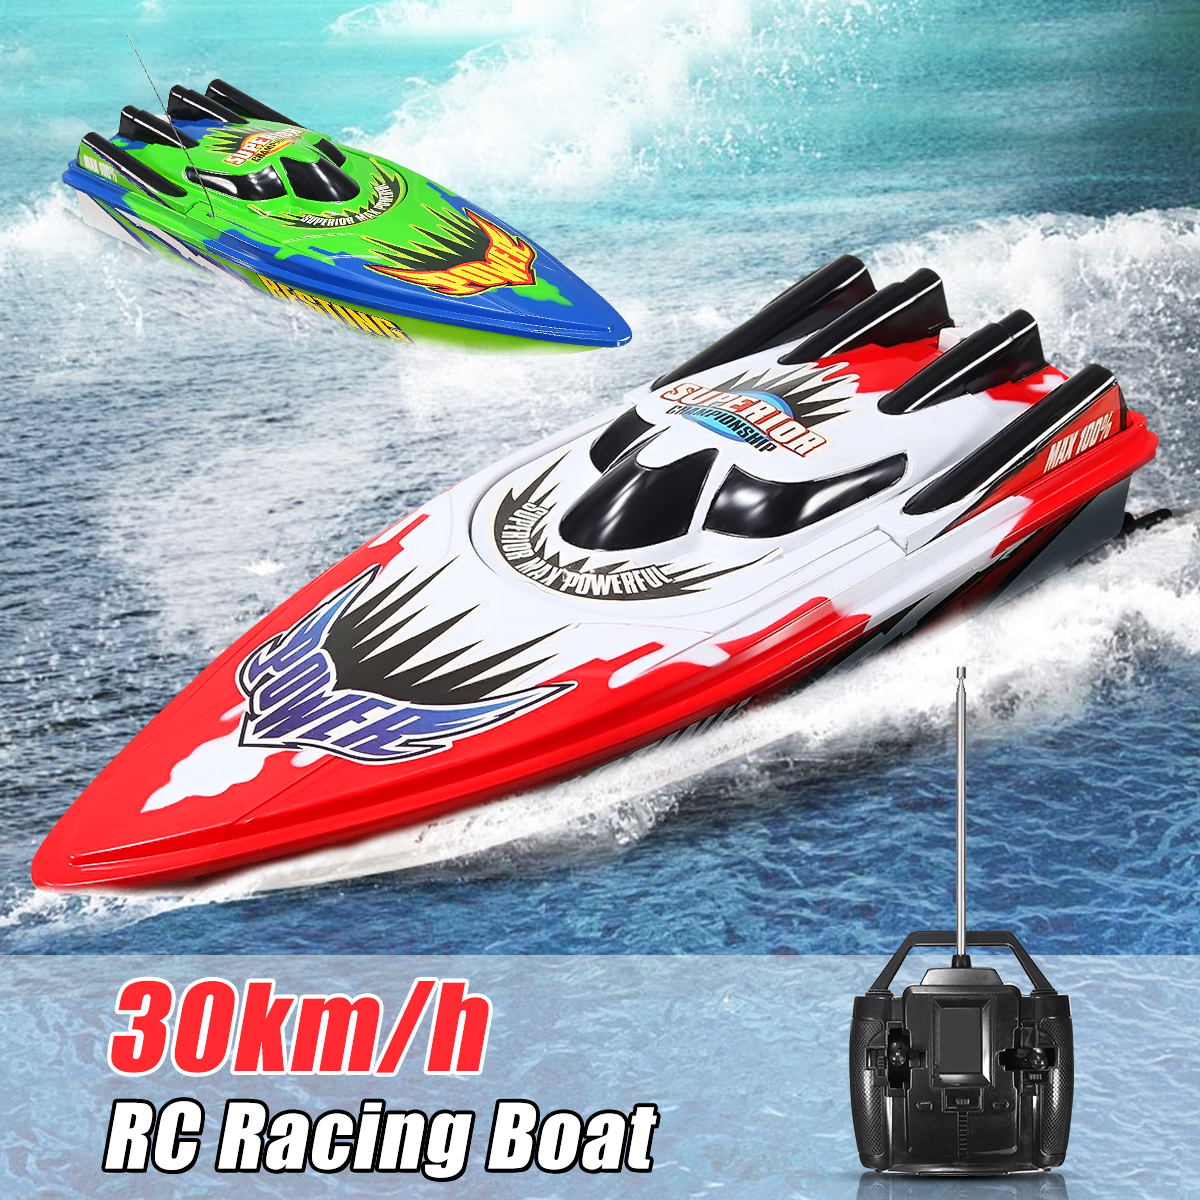 2 Color Radio Remote Control Twin Motor Speed Boat RC Racing Boat Toy Kids Children